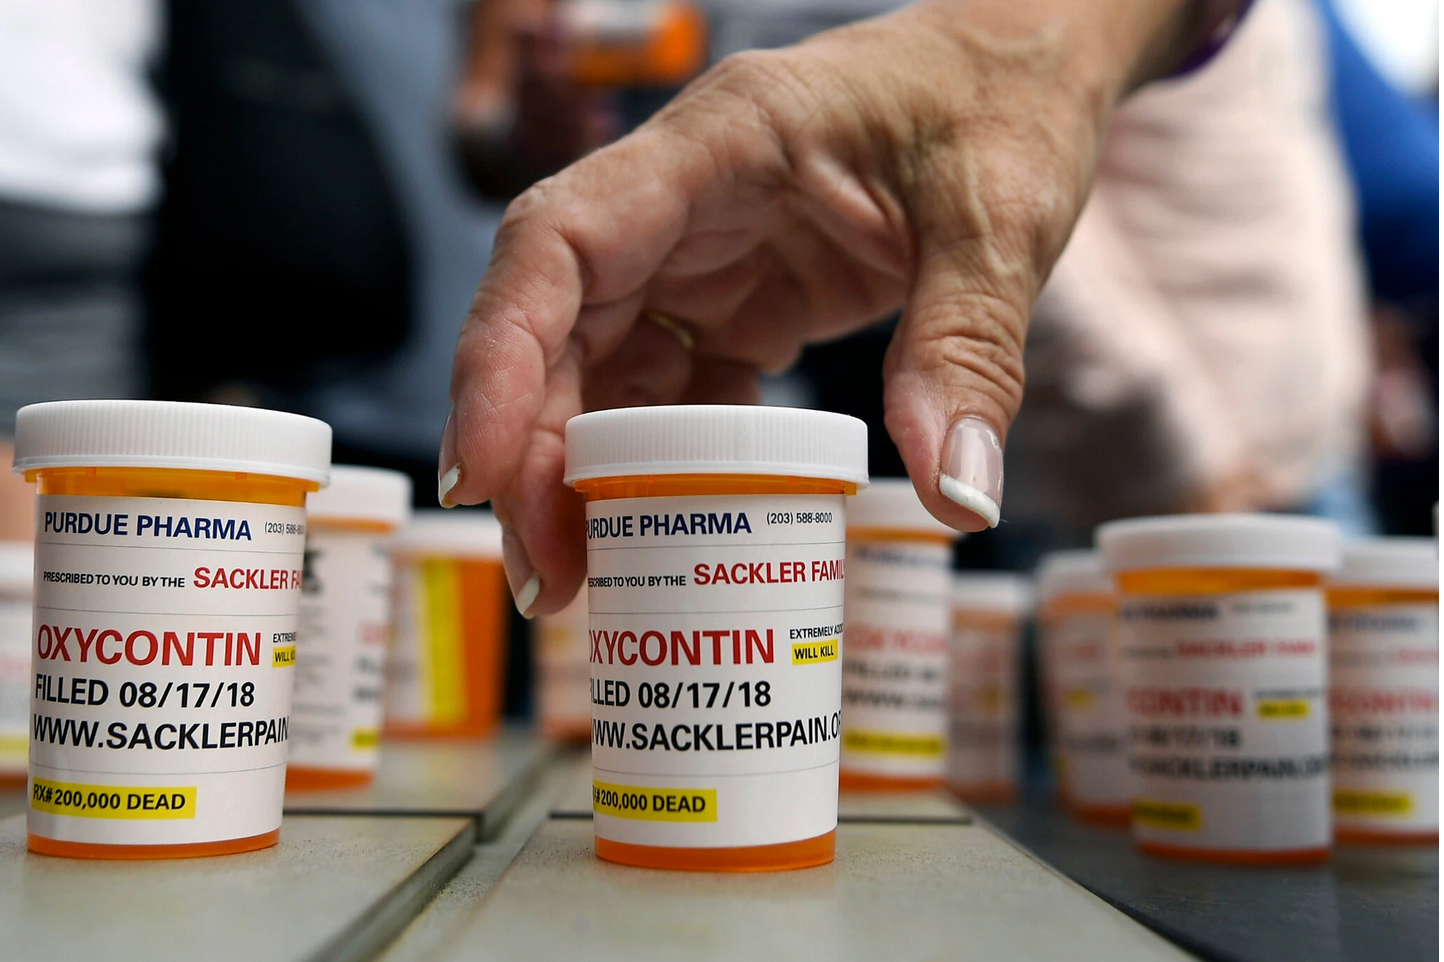 The Oxycontin Sackler Plot Thickens and Sickens